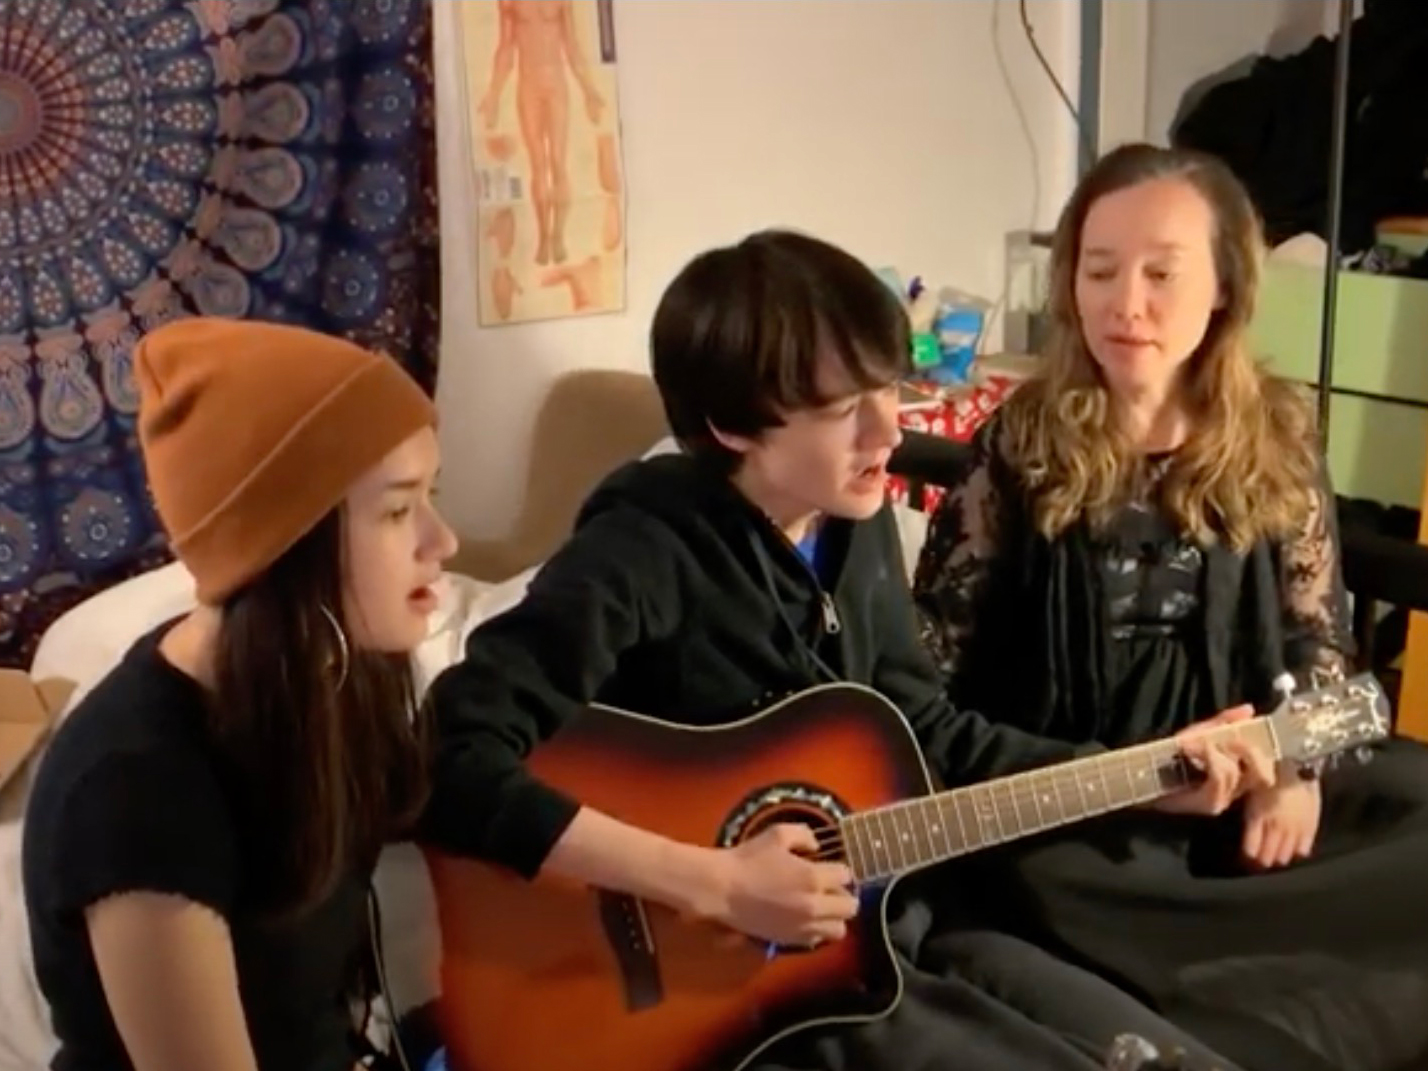 Talia, Liam, and Ondine perform Helplessly hoping